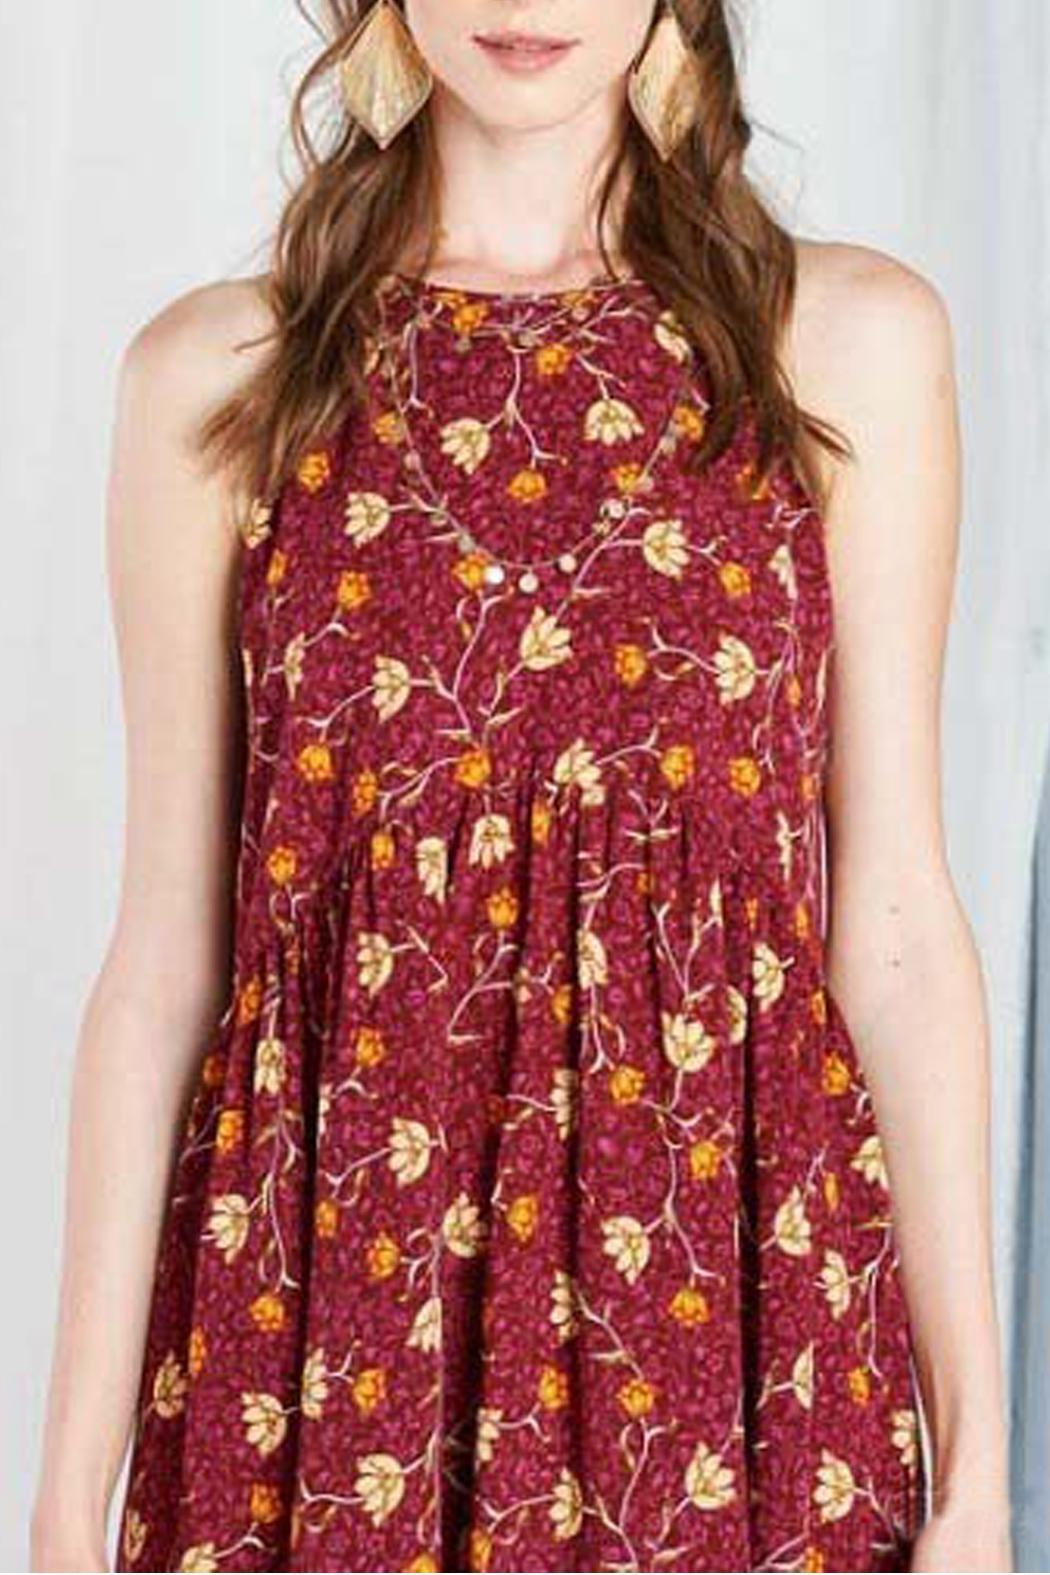 Jodifl Floral Babydoll Dress From Texas By Jchronicles